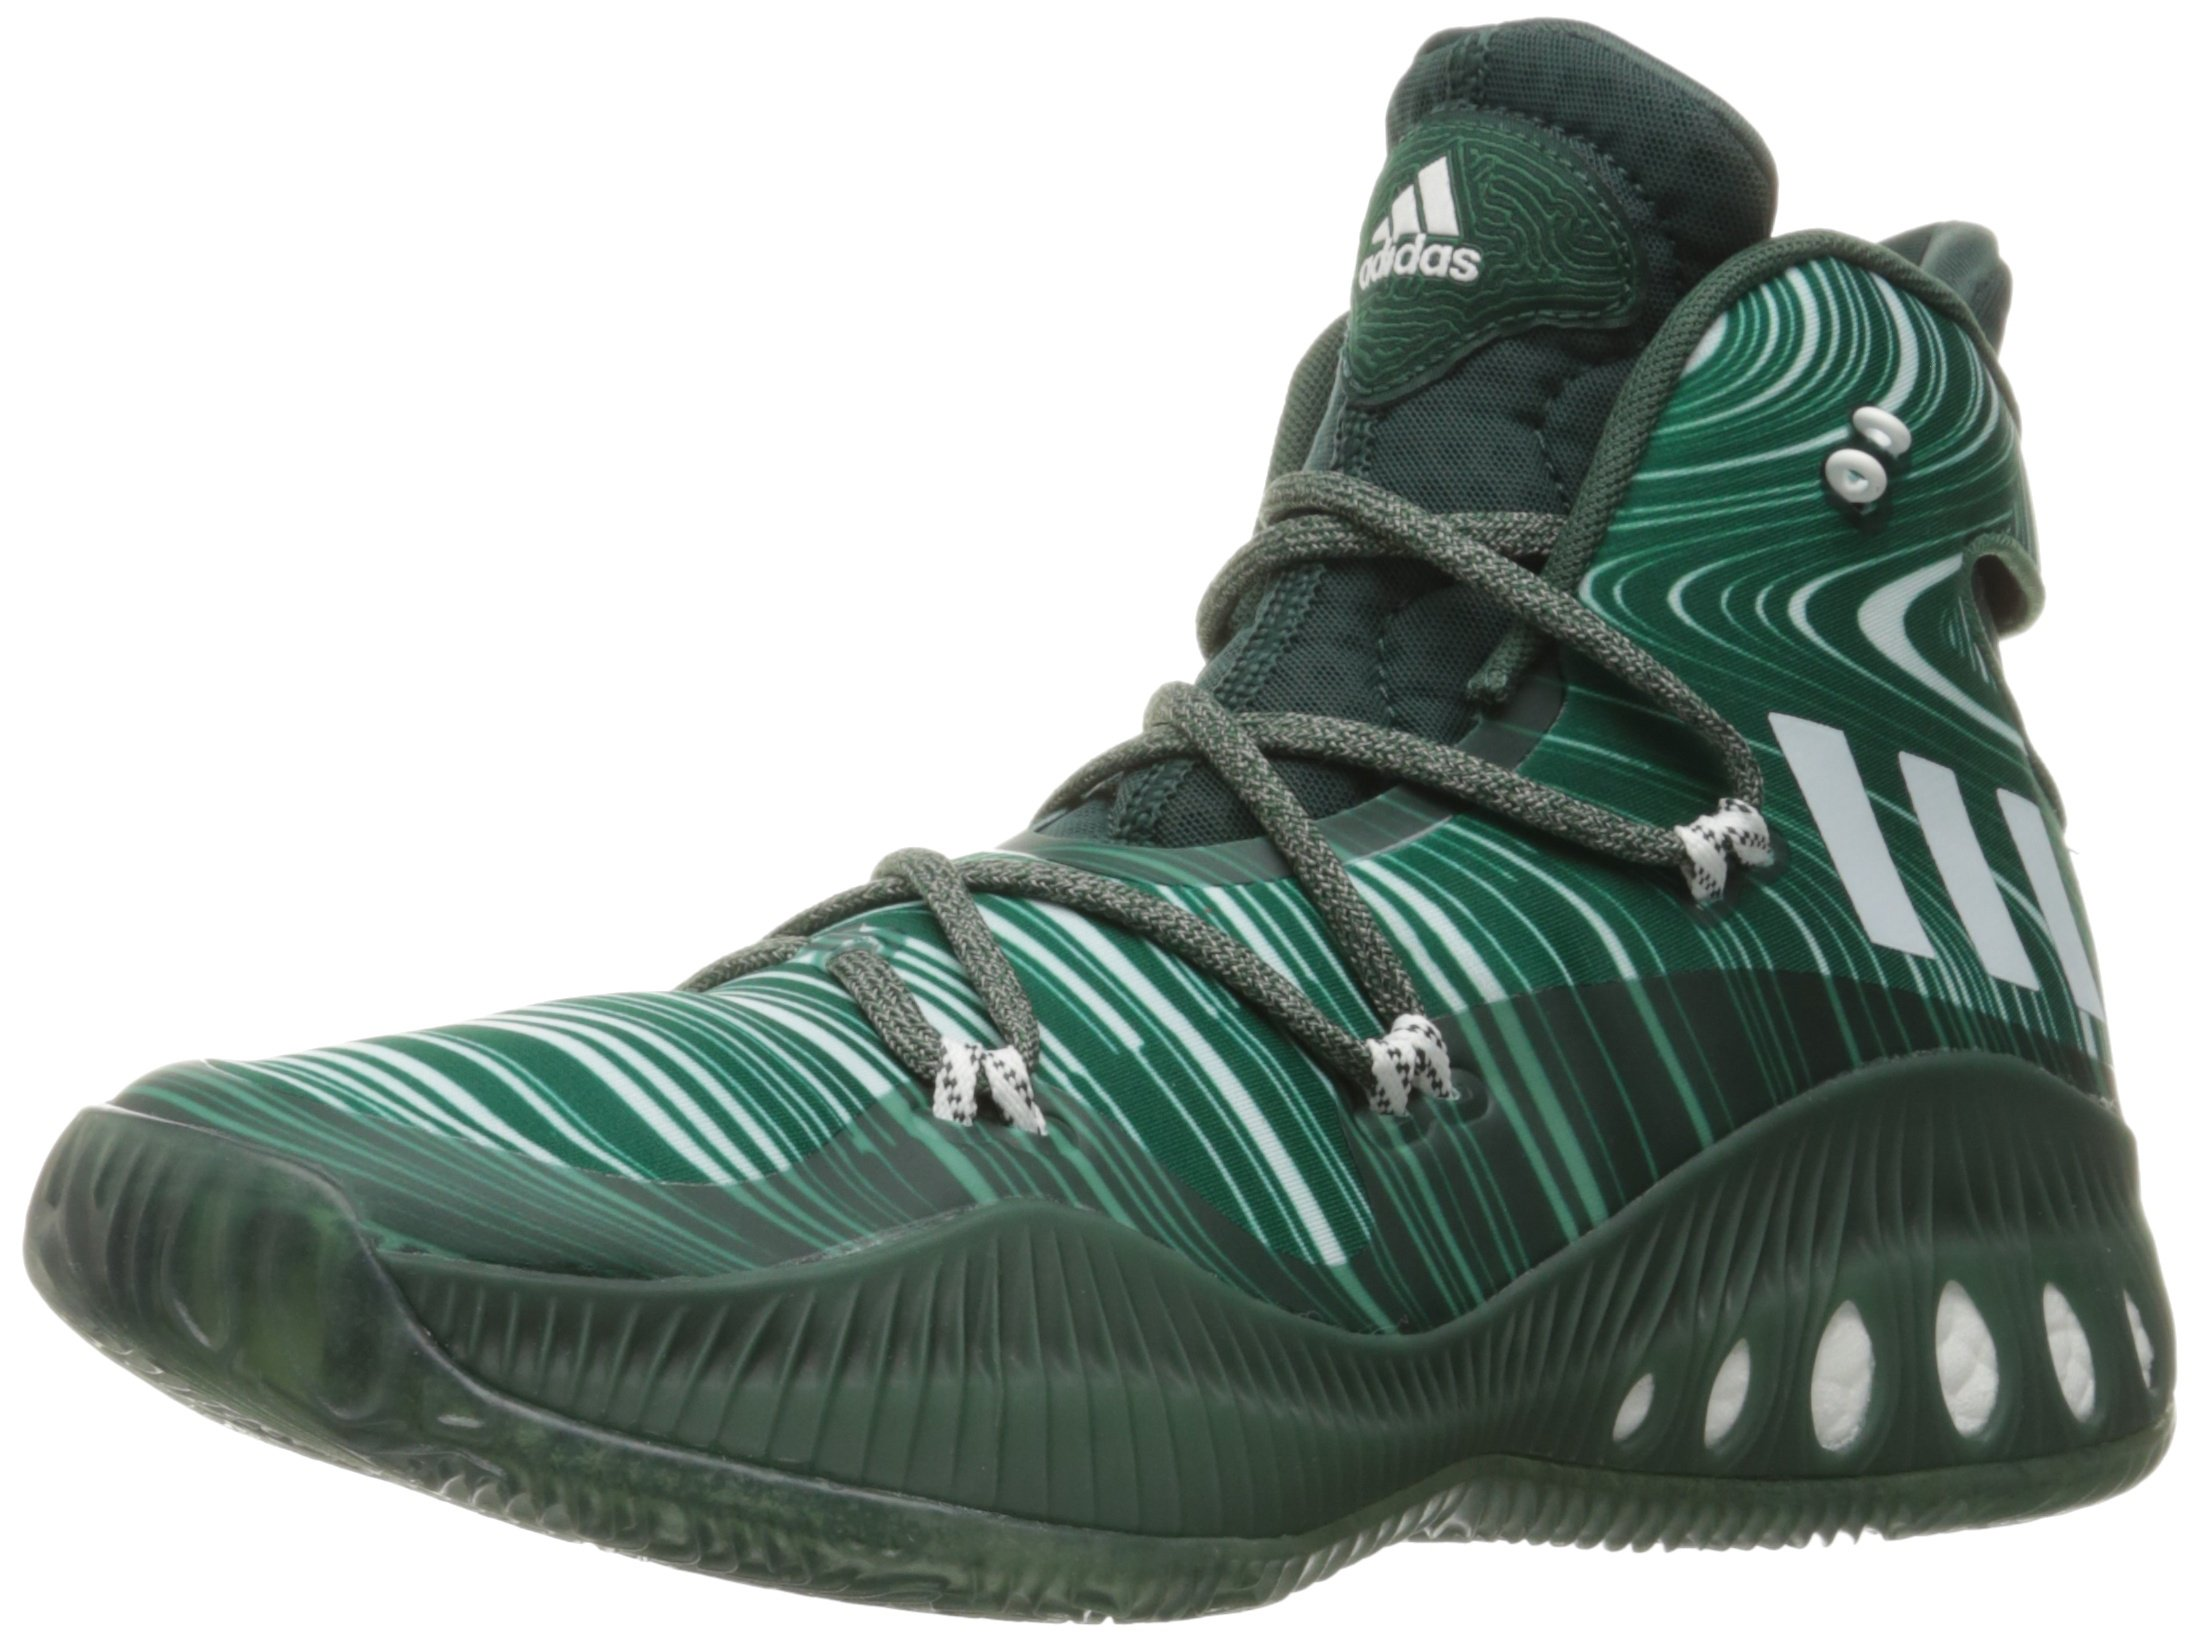 3e610a57fafd adidas Performance Men s Crazy Explosive Basketball Shoe product image